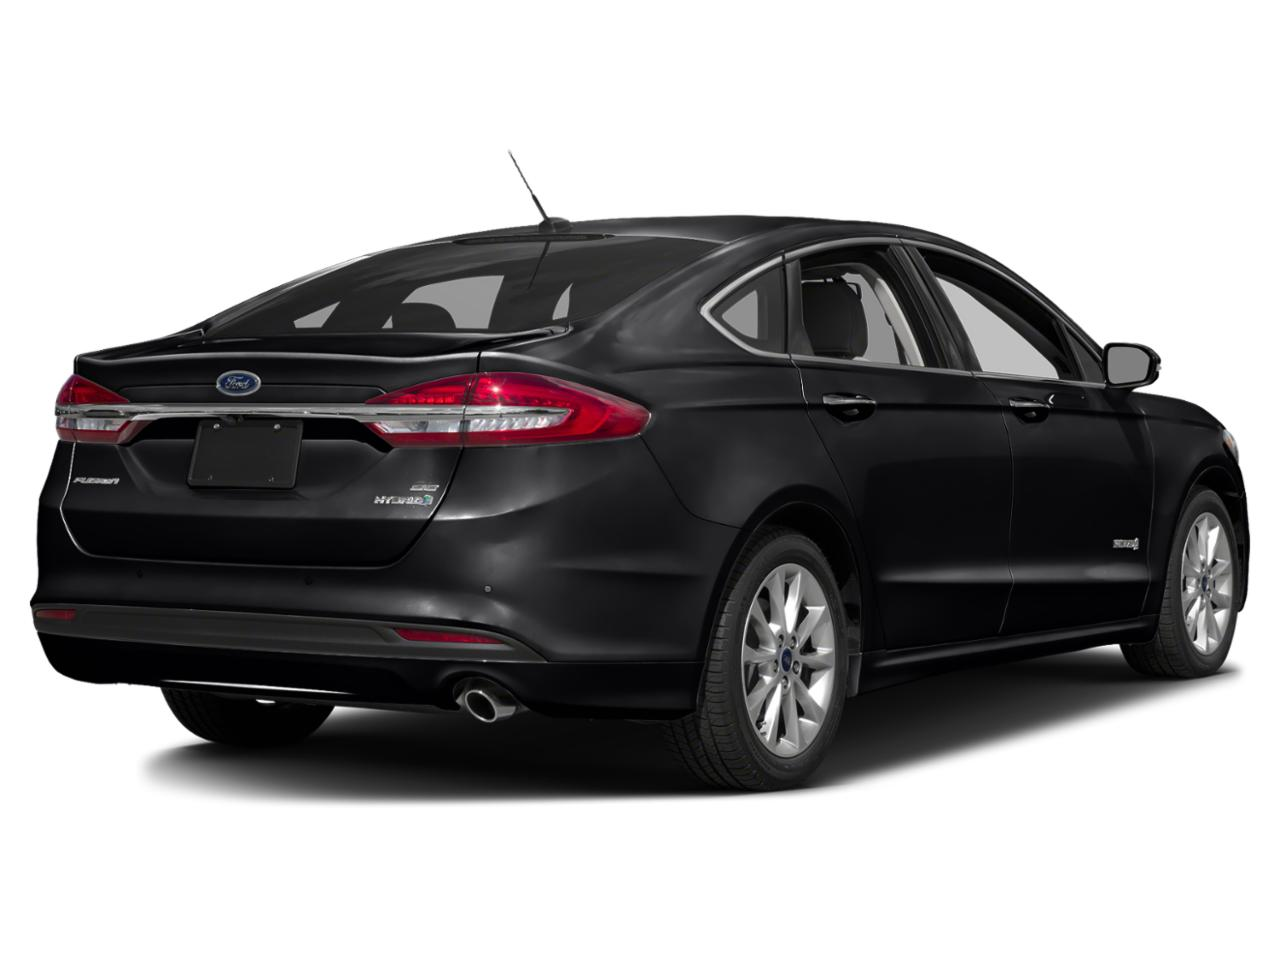 used shadow black 2018 ford fusion hybrid in hanover ma dan o brien infiniti of hanover infiniti of hanover